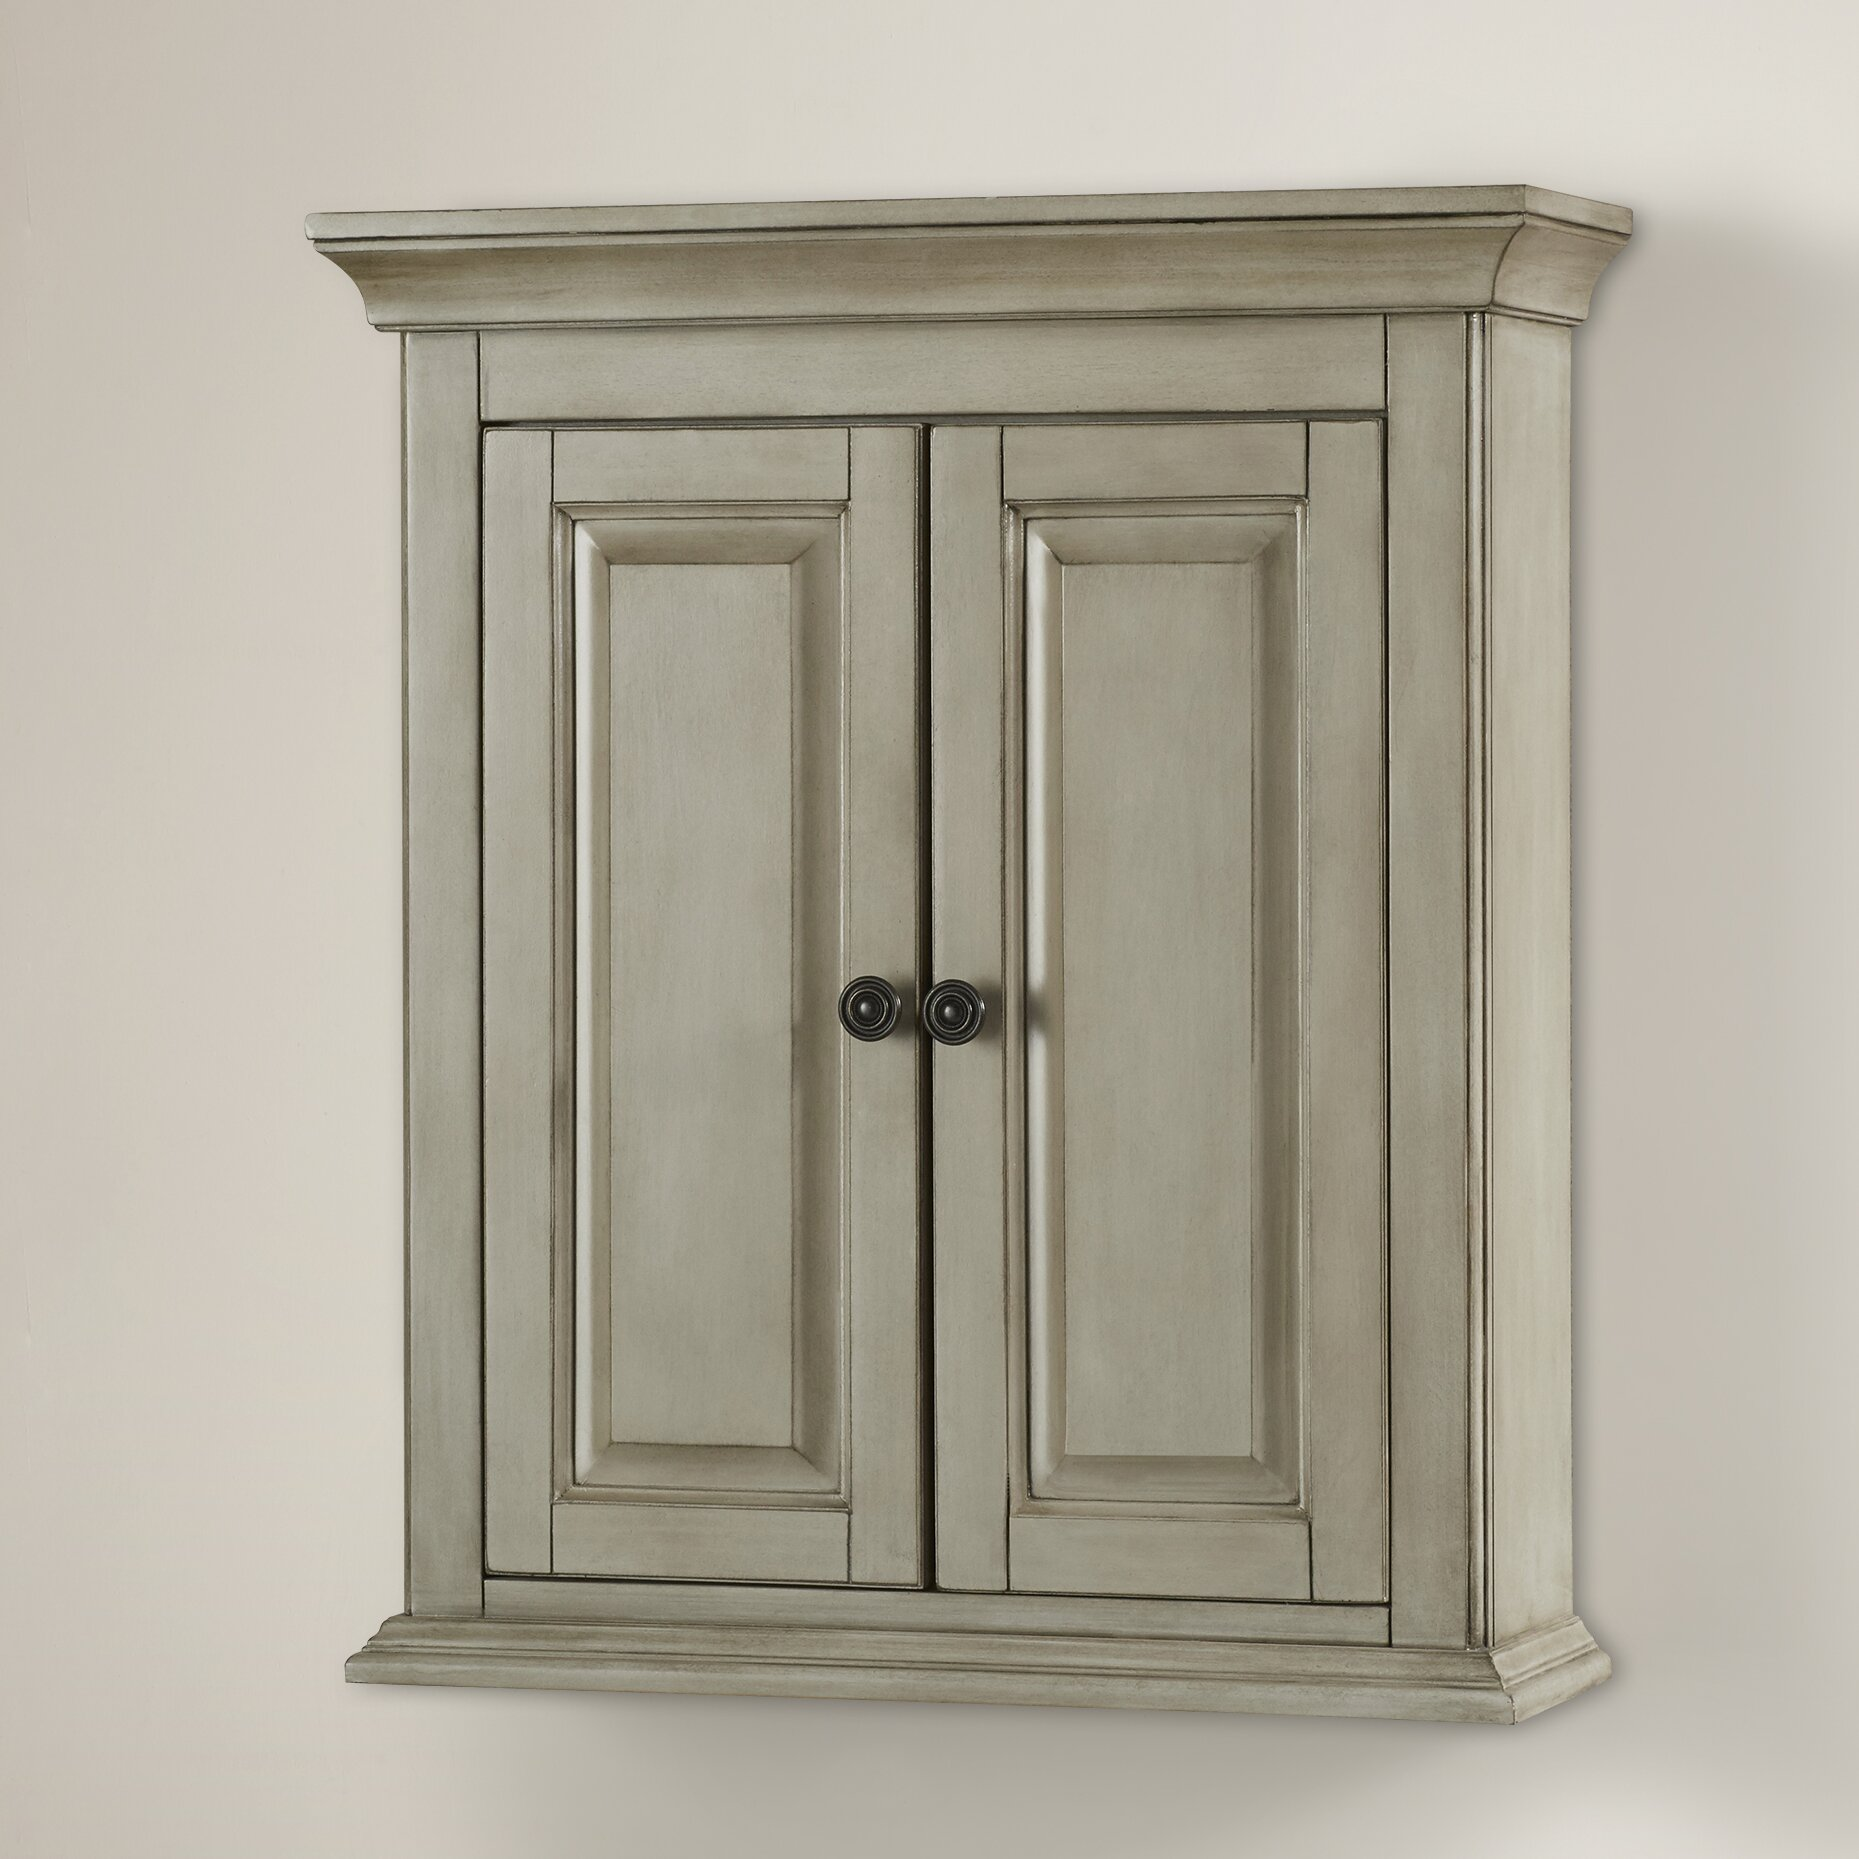 "hazelwood home palmo 24"" w x 28"" h wall mounted cabinet"